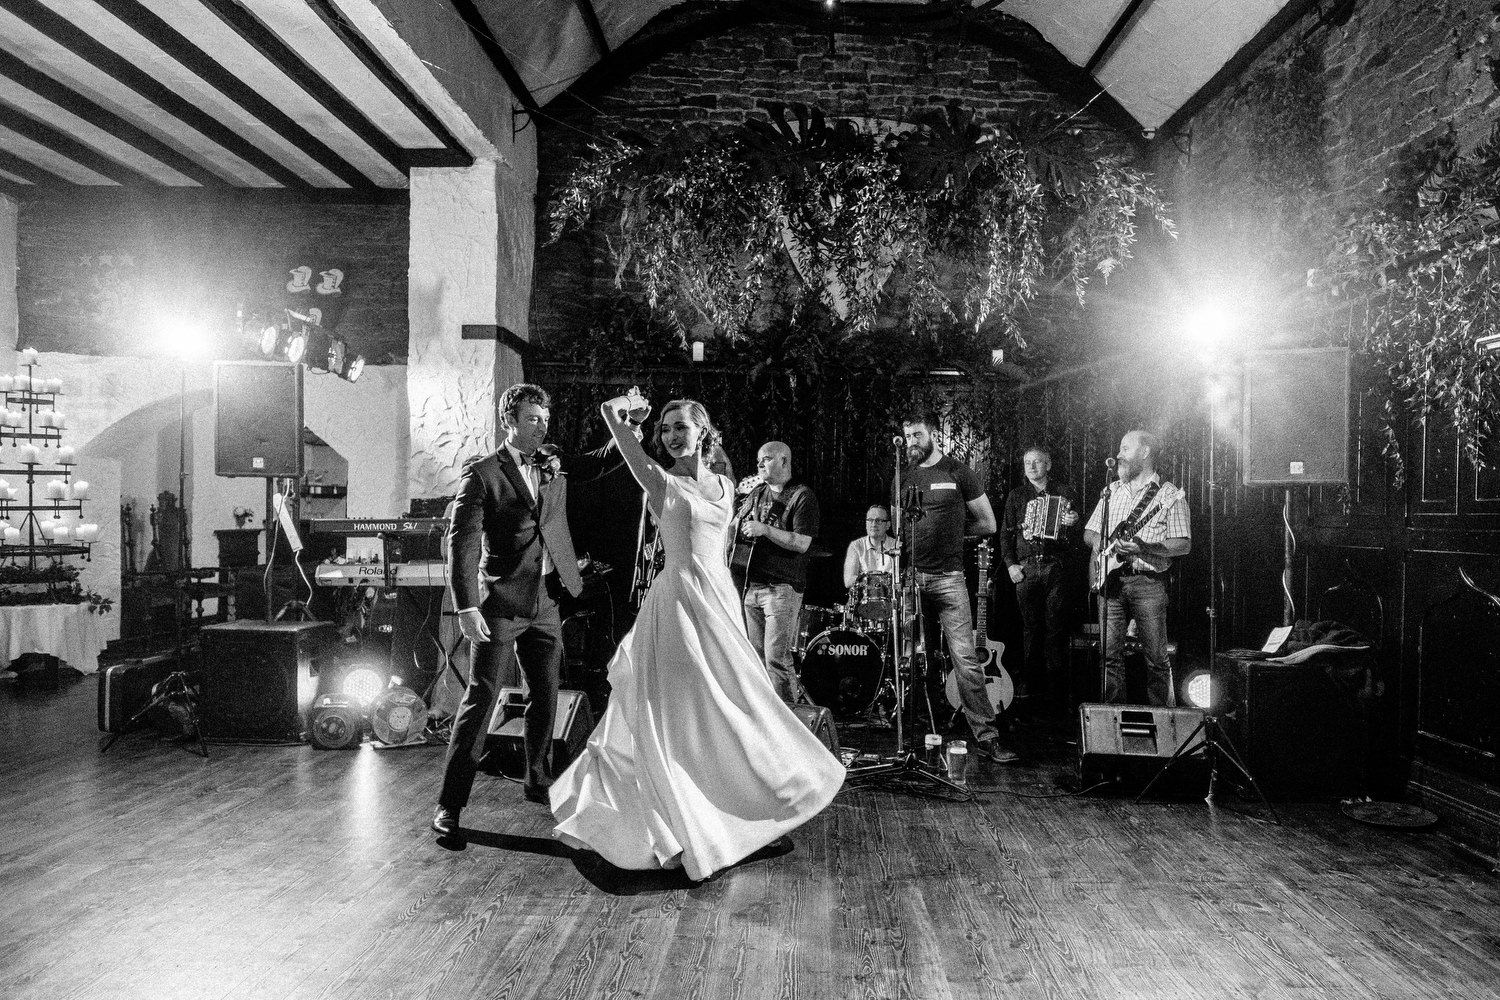 000000000000000000000200_bride_style_vintage_photography_david_mcclelland_ireland_castle_hollywood_kinnity_wedding_photographer_fujifilm